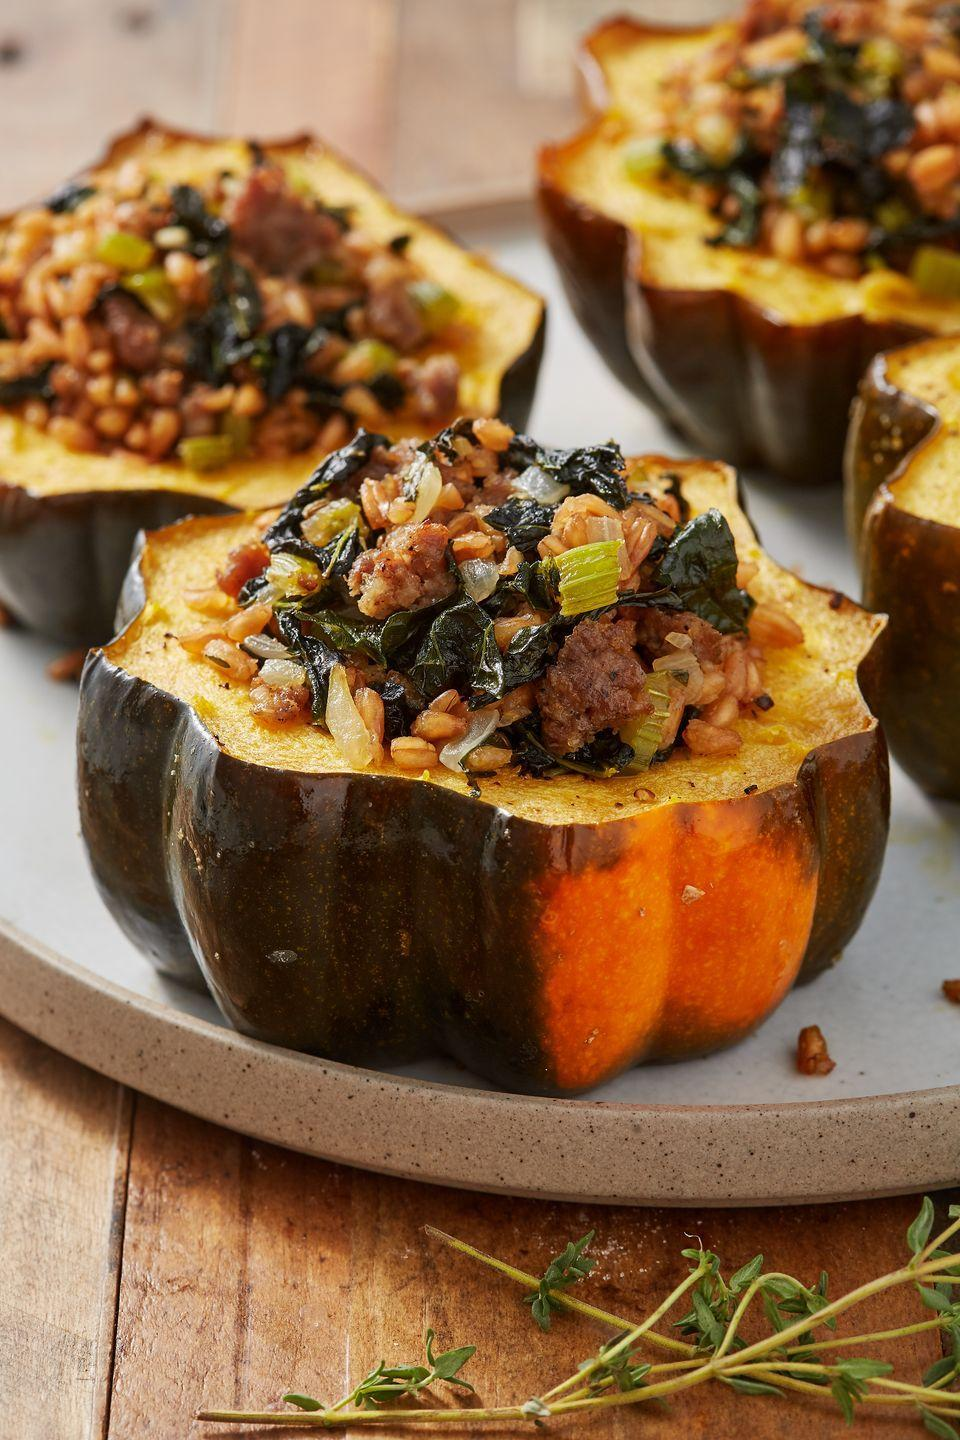 "<p>Butternut squash who? </p><p>Get the recipe from <a href=""https://www.delish.com/cooking/recipe-ideas/a28484111/easy-stuffed-acorn-squash-recipe/"" rel=""nofollow noopener"" target=""_blank"" data-ylk=""slk:Delish"" class=""link rapid-noclick-resp"">Delish</a>.</p>"